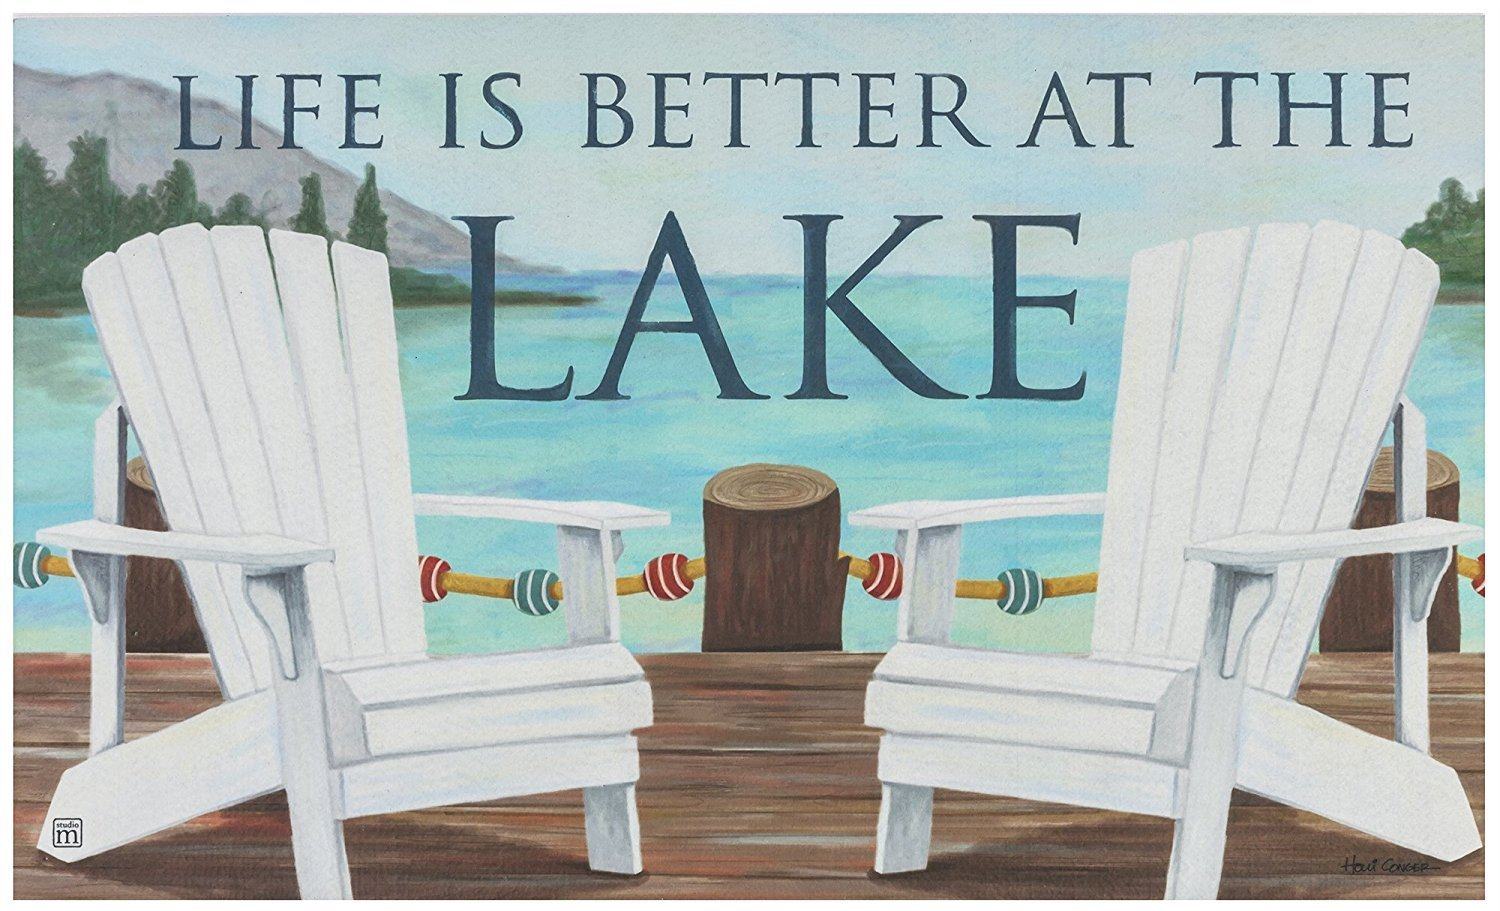 Crystal Emotion Life Is Better At The Lake,Nautical Adirondack Chair Entry  Way Home Decor Doormat